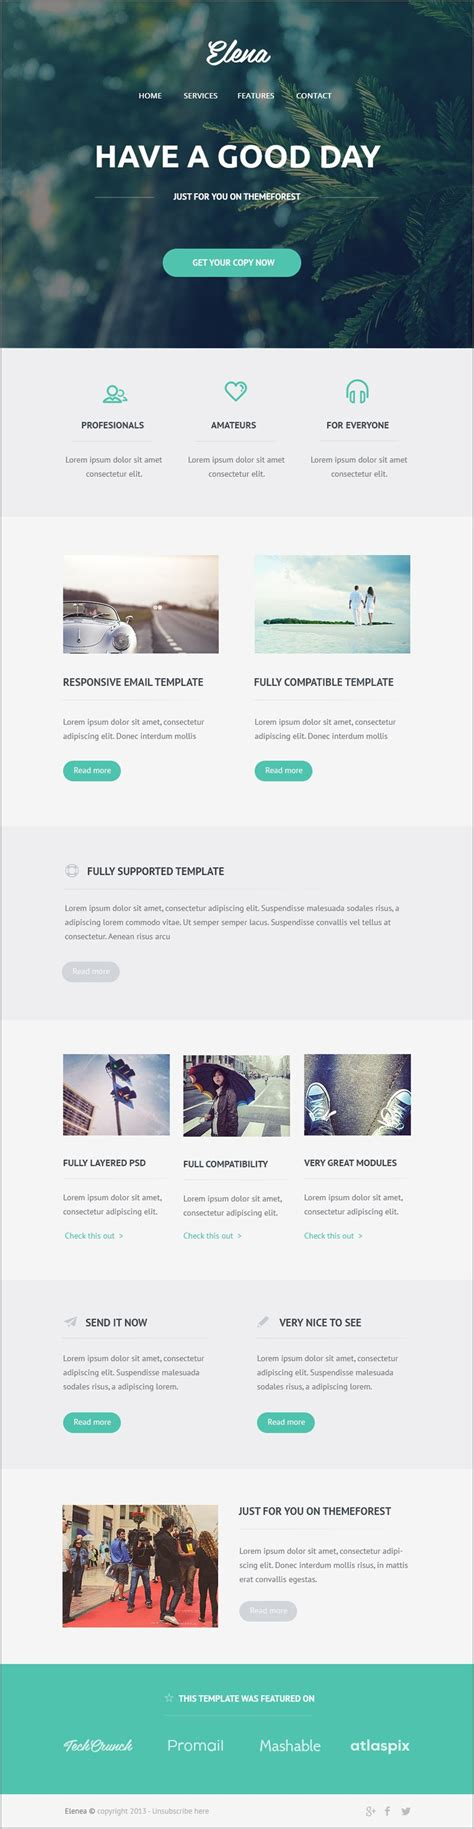 free psd email newsletter templates free email newsletter templates psd 187 css author